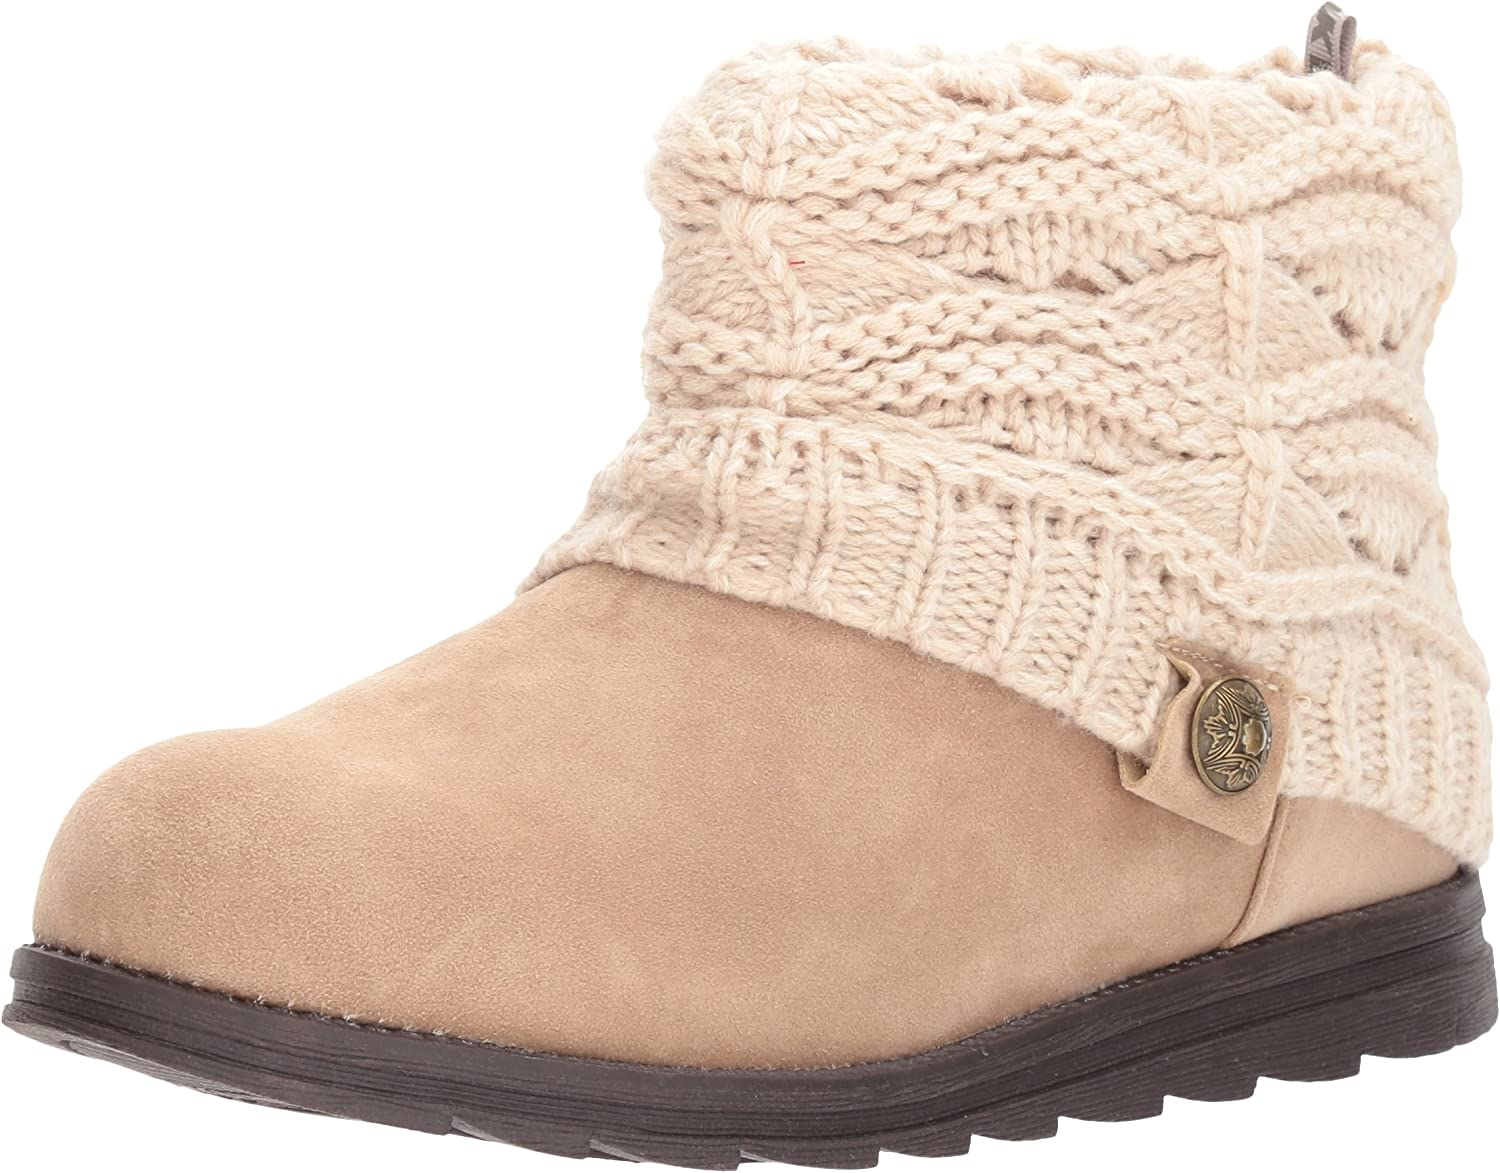 MUK LUKS Womens Women's Poala Boots Fashion Boot